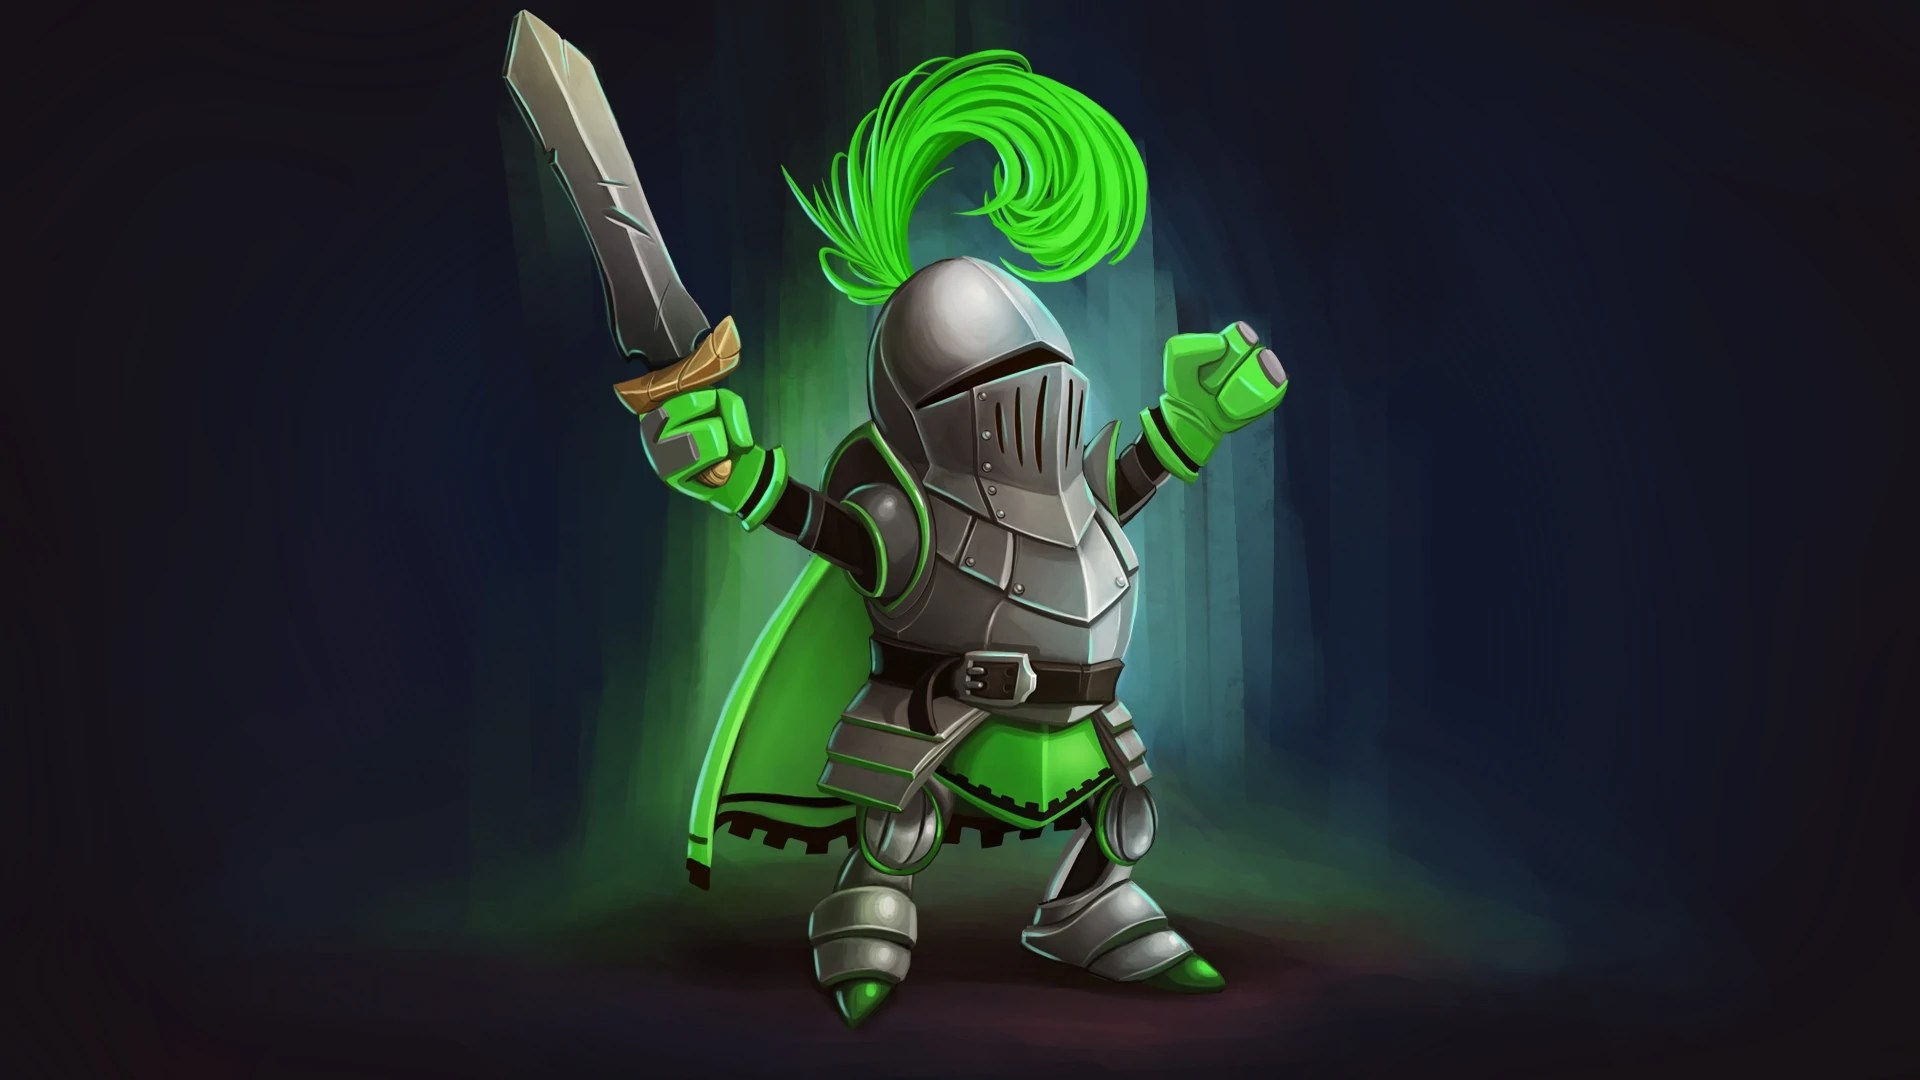 Knight Squad Green Knight Steam Trading Cards Wiki